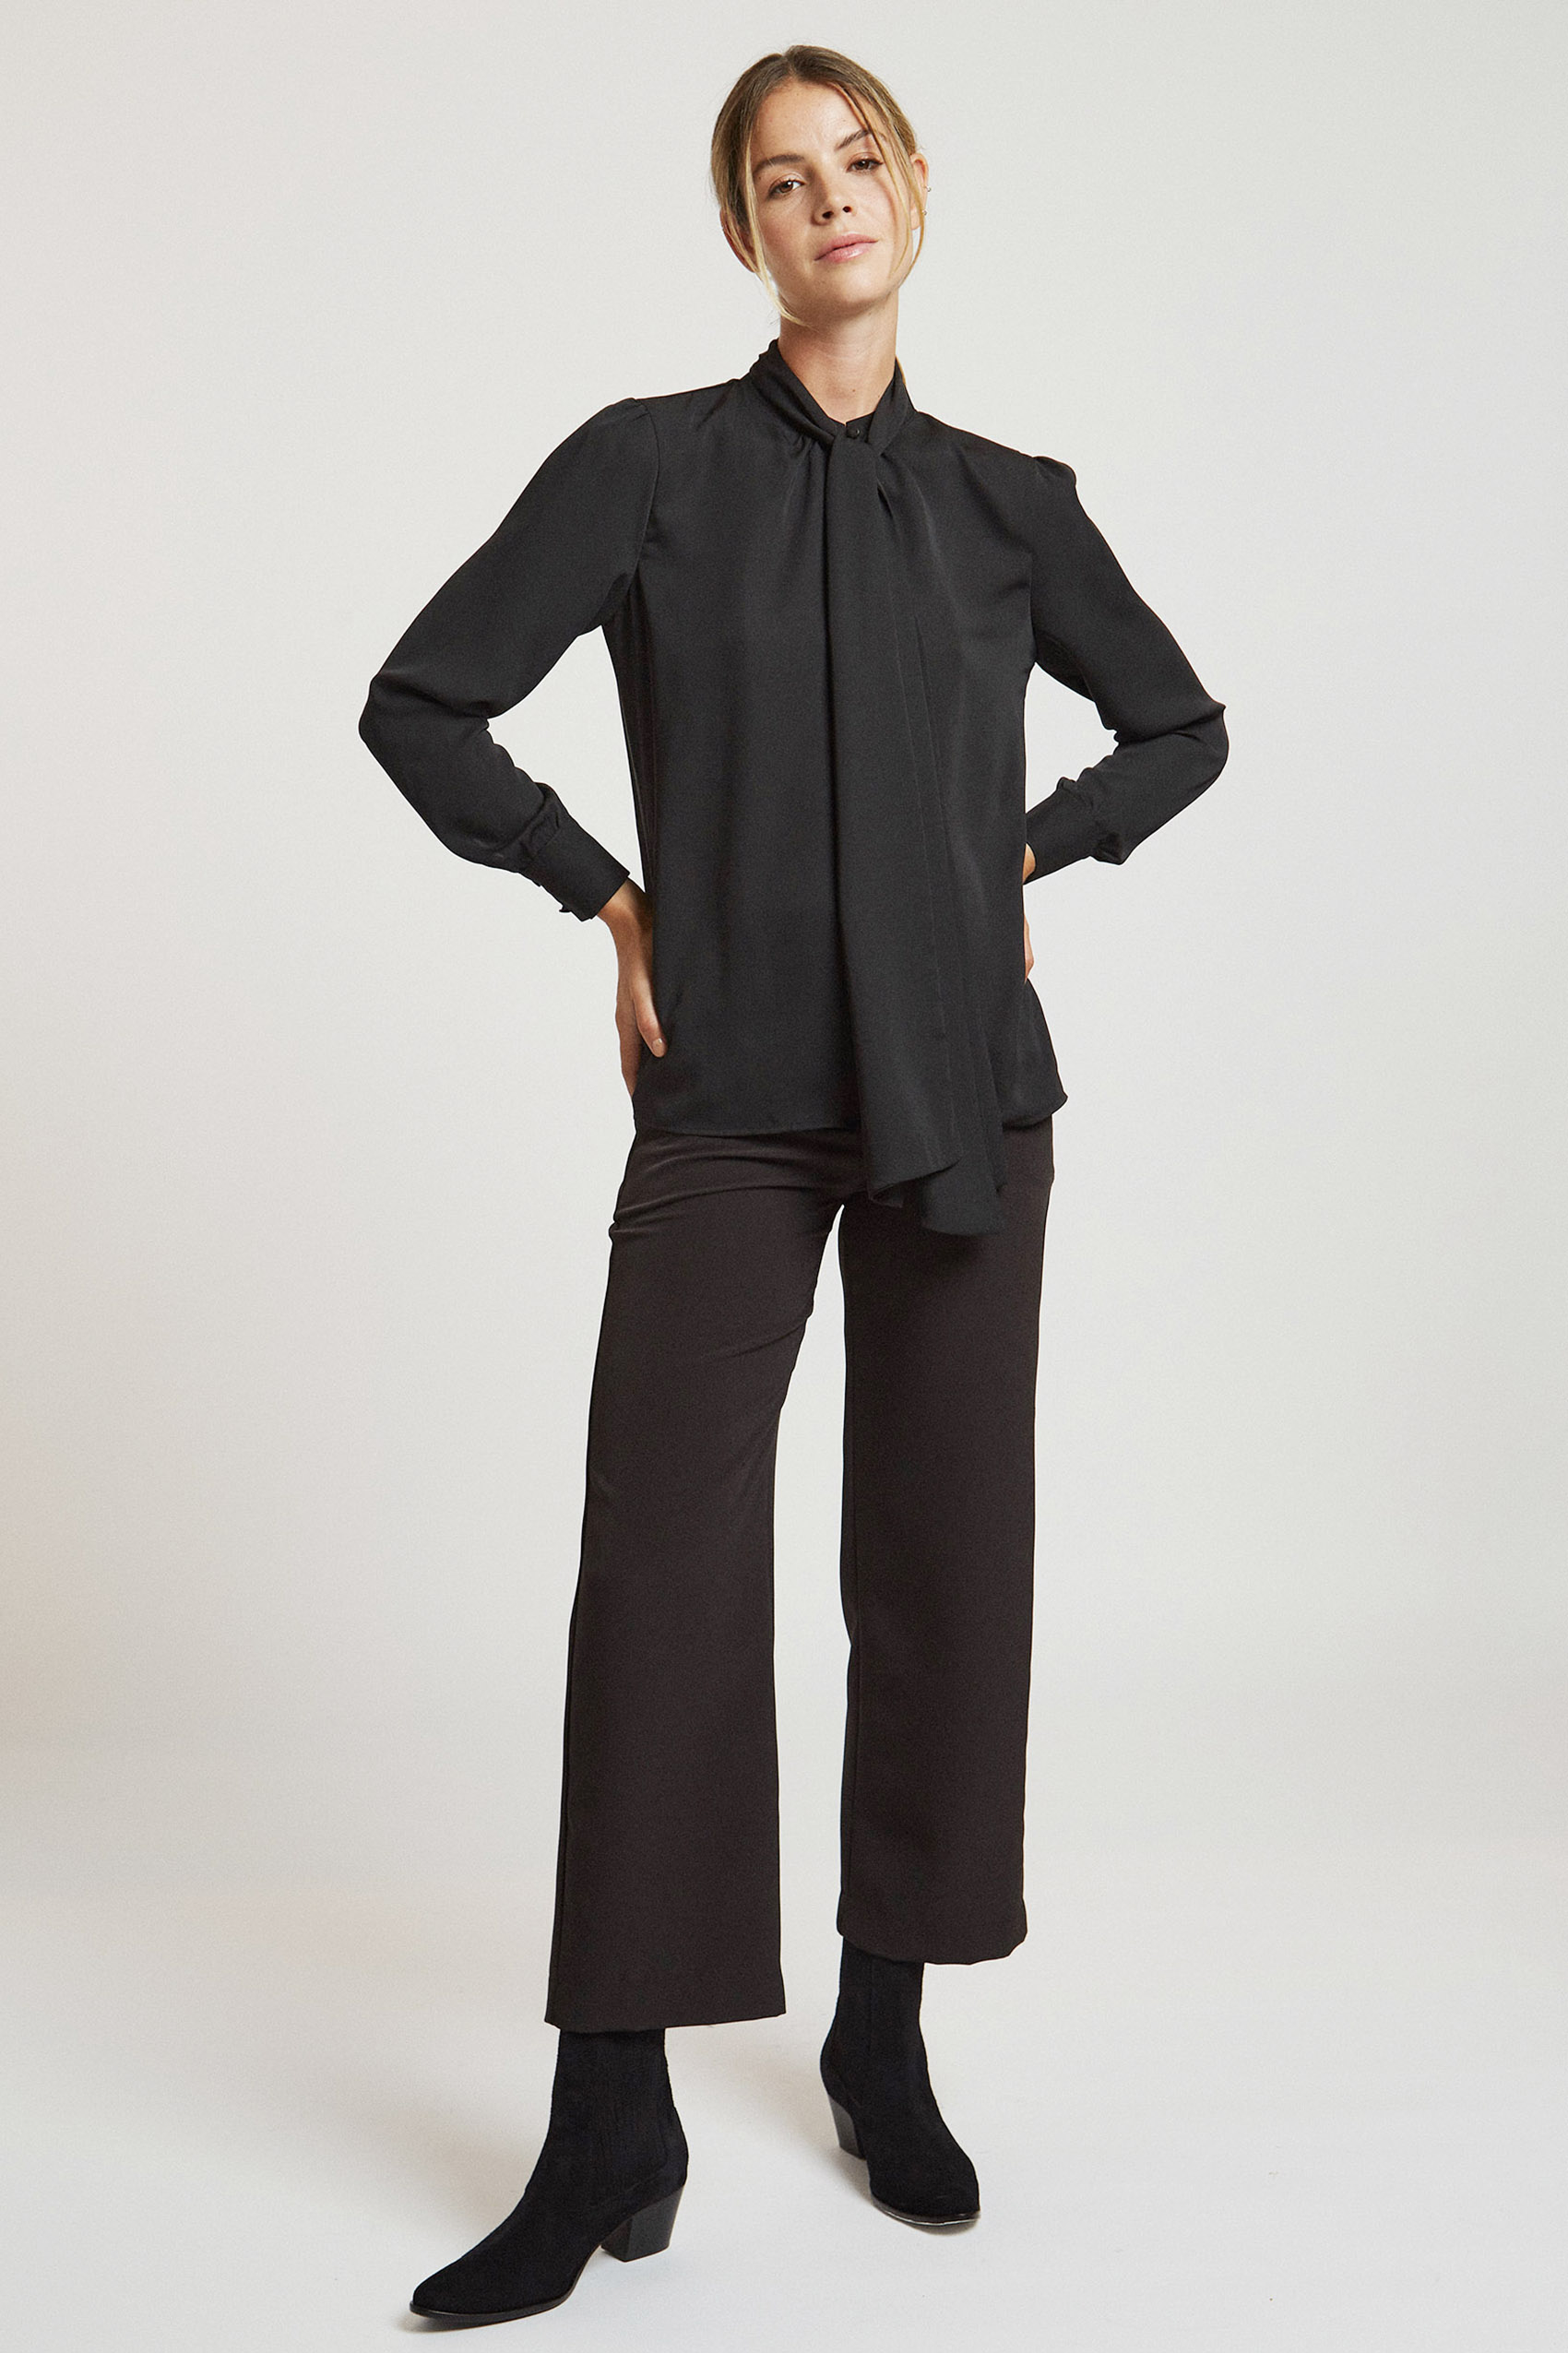 awada_camisa-amelie_48-06-2021__picture-20255